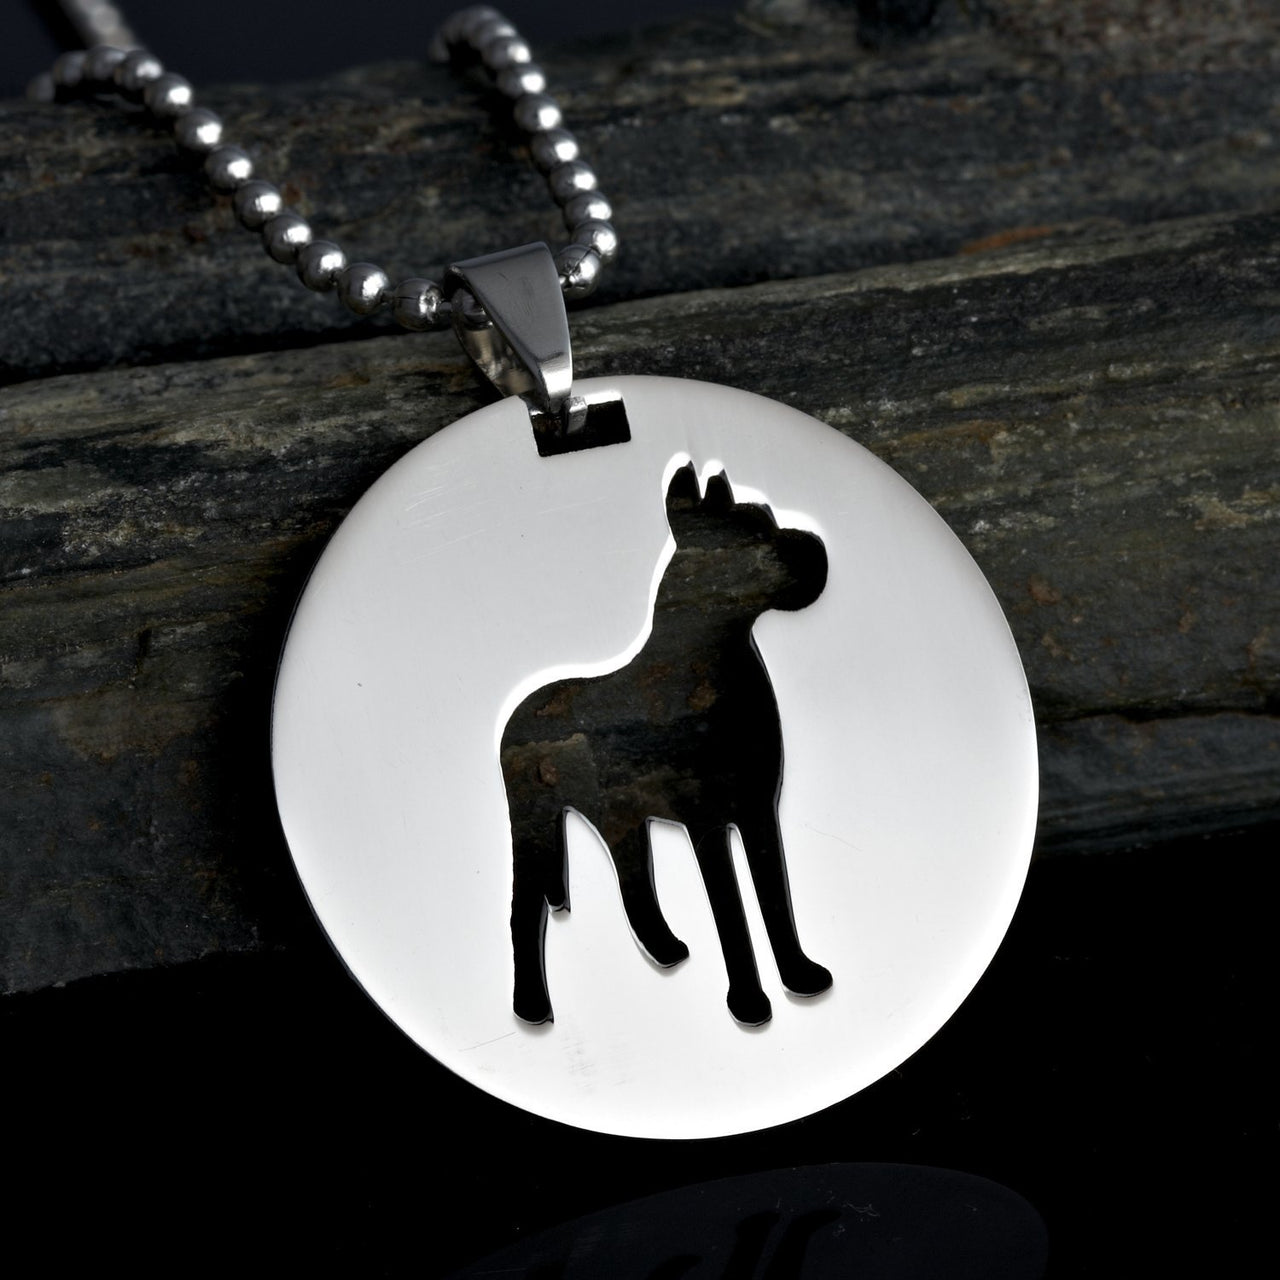 2x Stainless Steel Round Shape Great Dane Silhouette Gentle Giant Deutsche Dogge German Mastiff Pet Dog Tag Collar Jewelry Charm Pendant Necklace